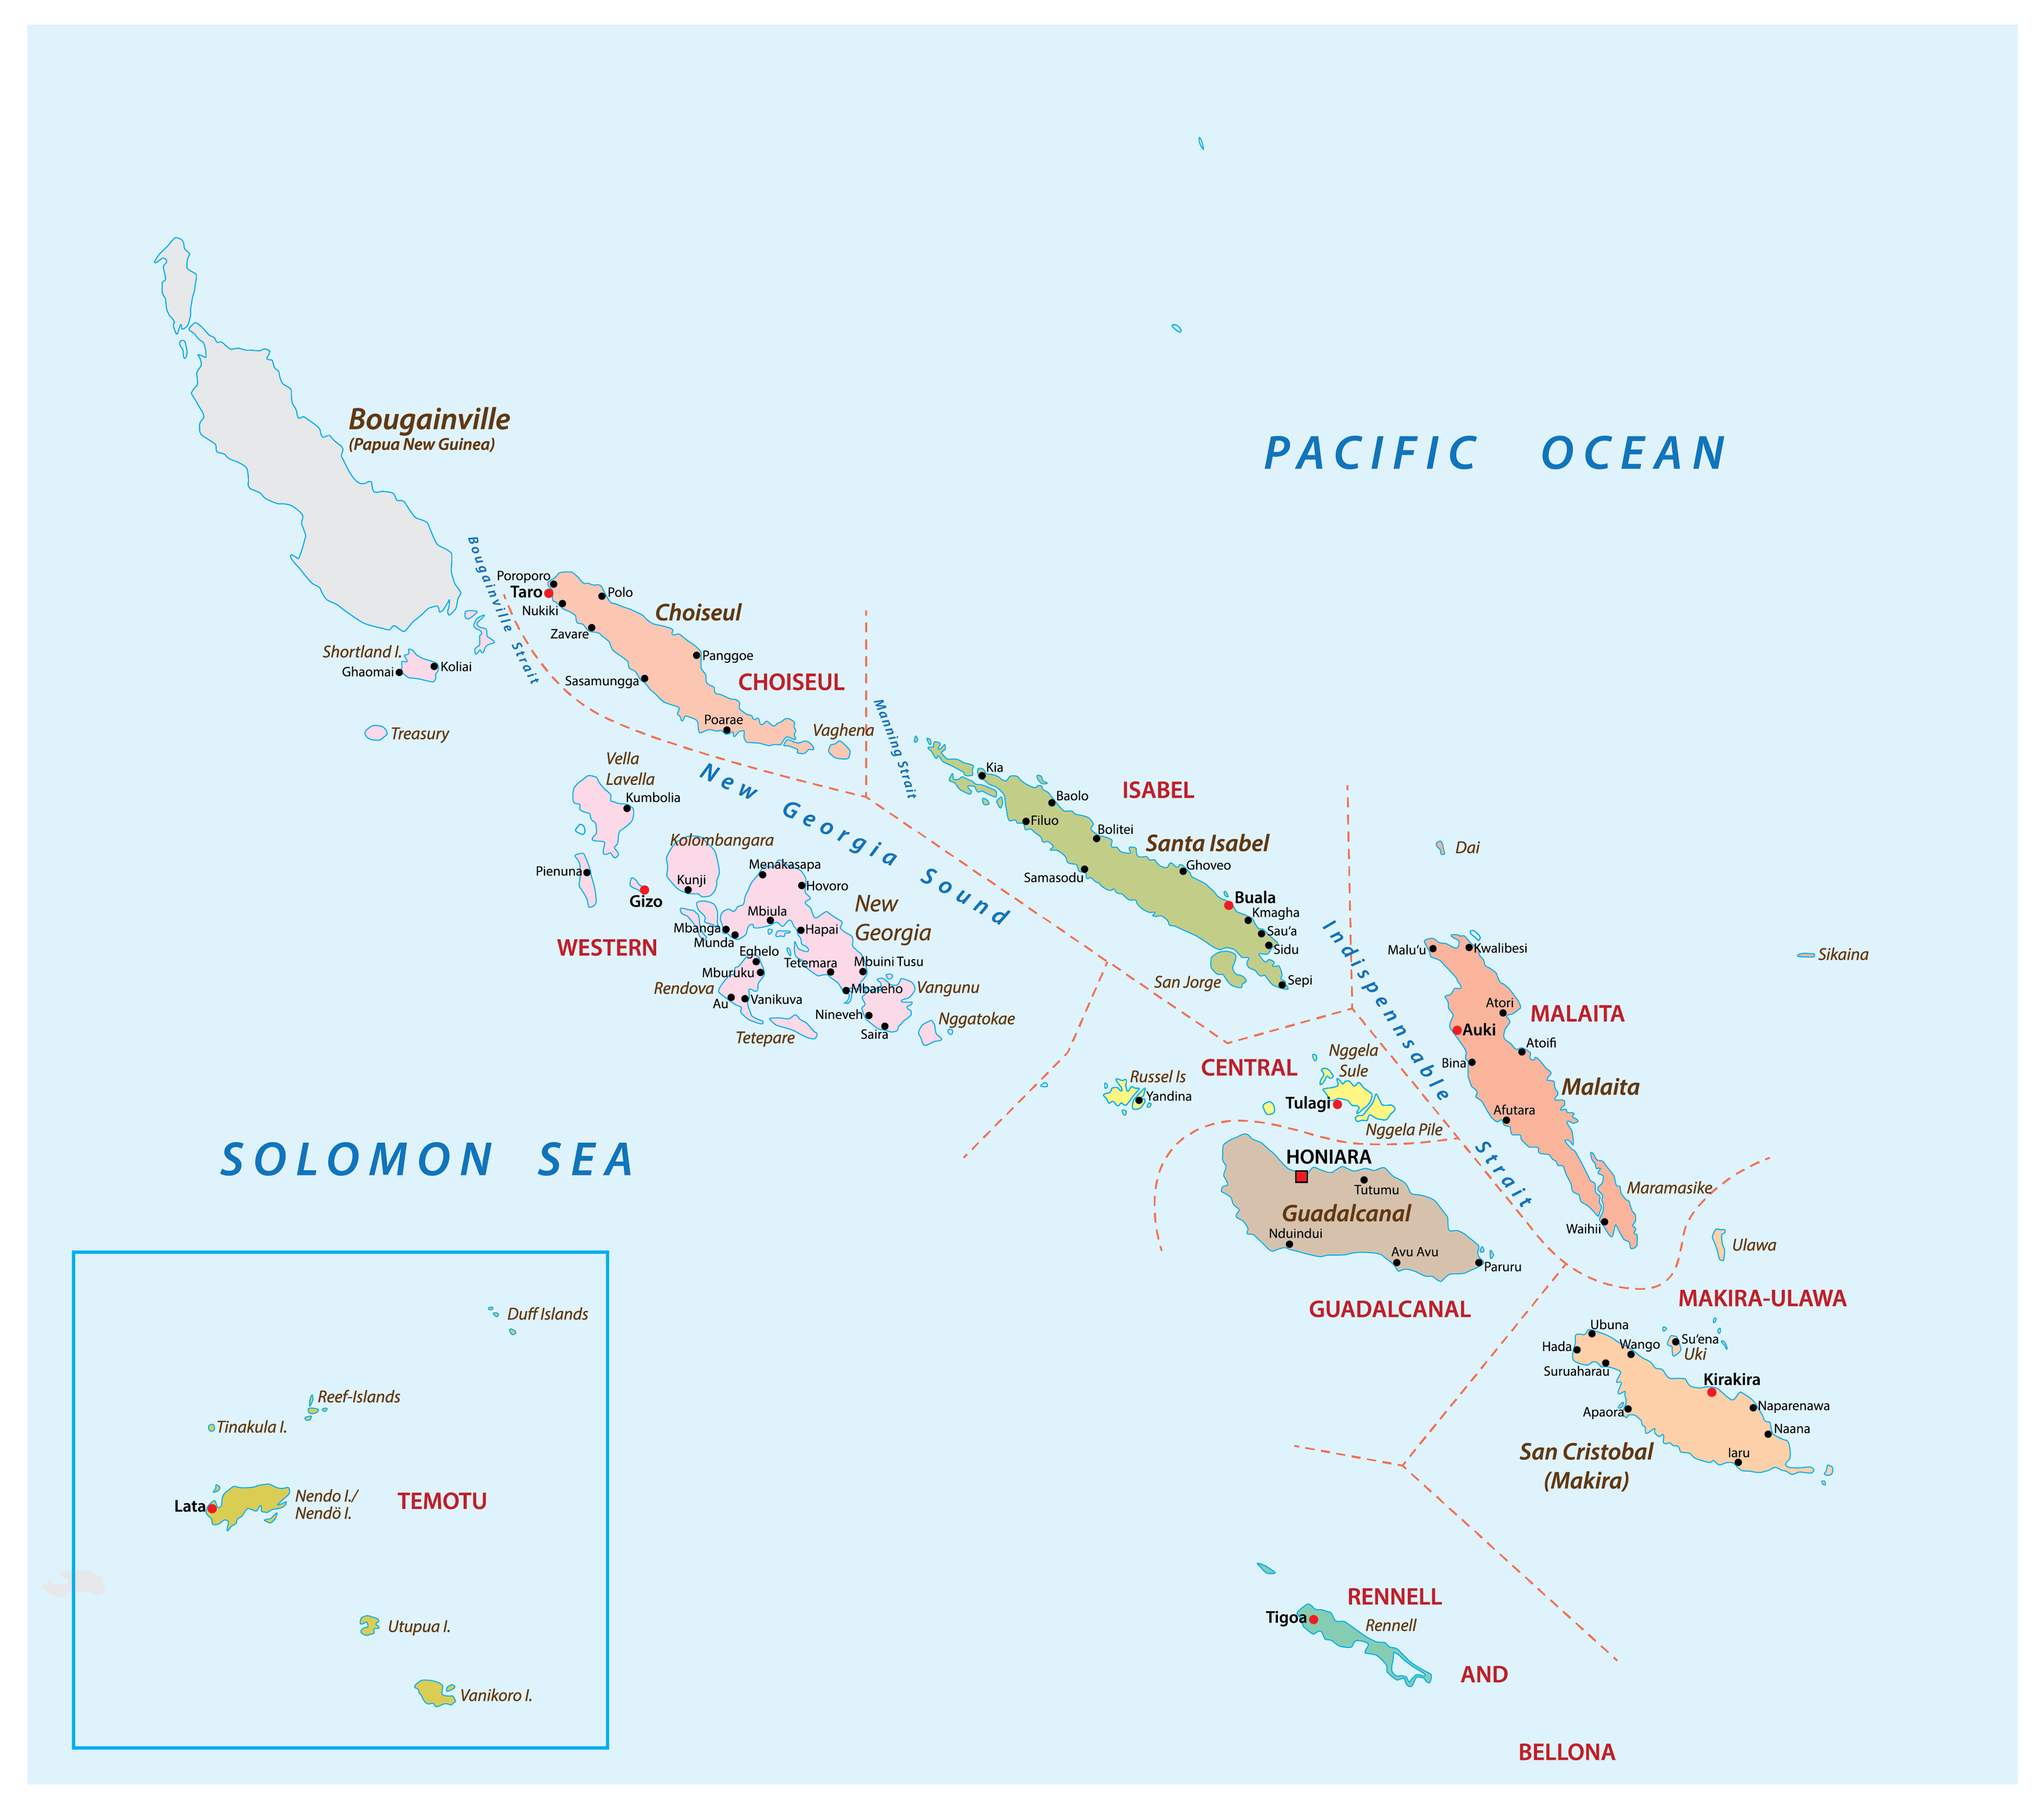 Political Map of Solomon Islands showing its 9 provinces and the capital city Honiara